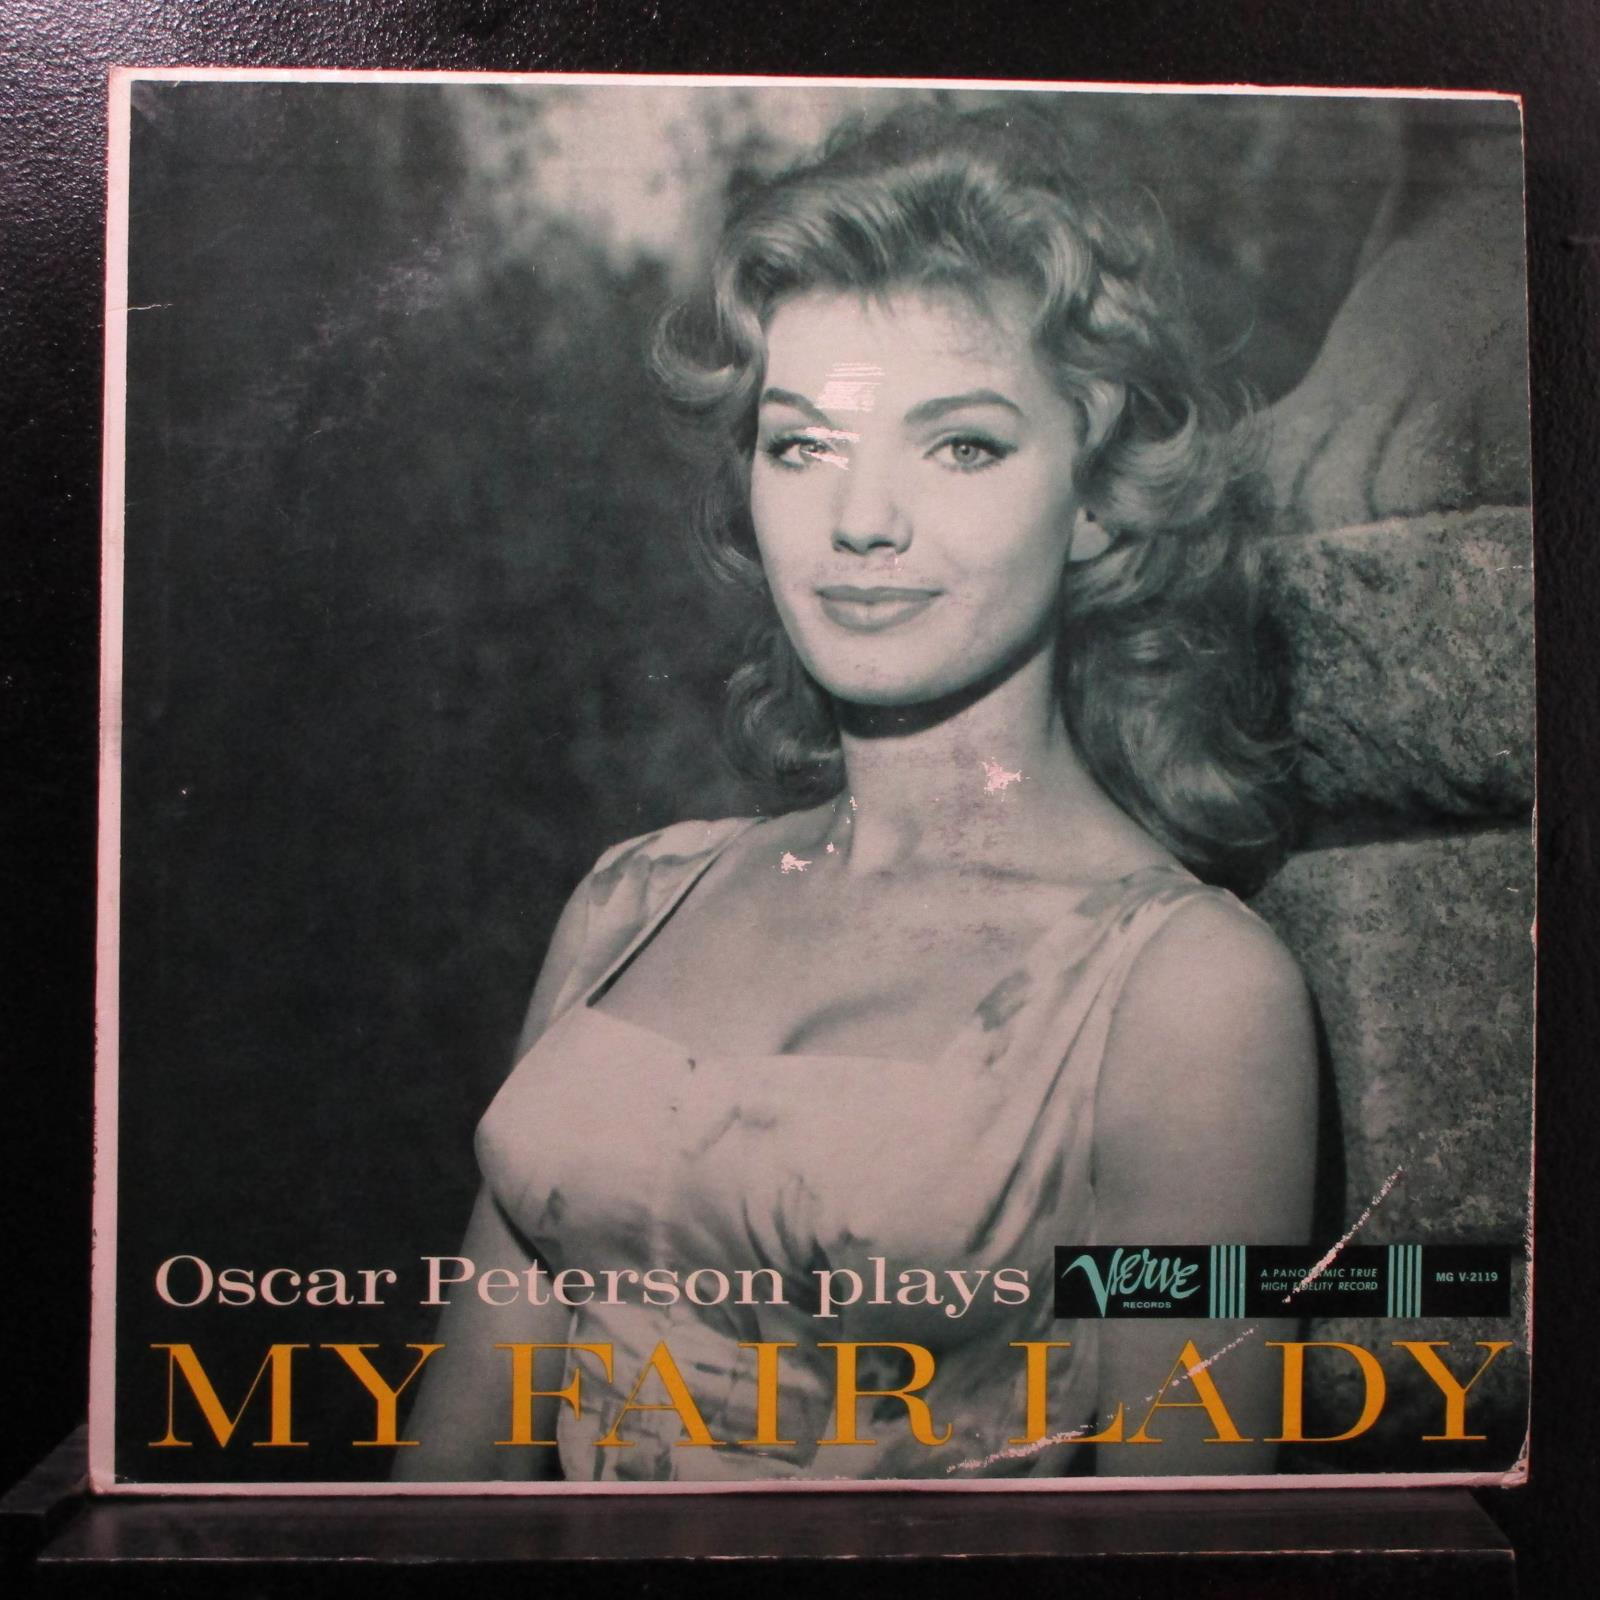 Oscar Peterson - Plays My Fair Lady LP Mint- MG V-2119 Mono 1958 Vinyl Record